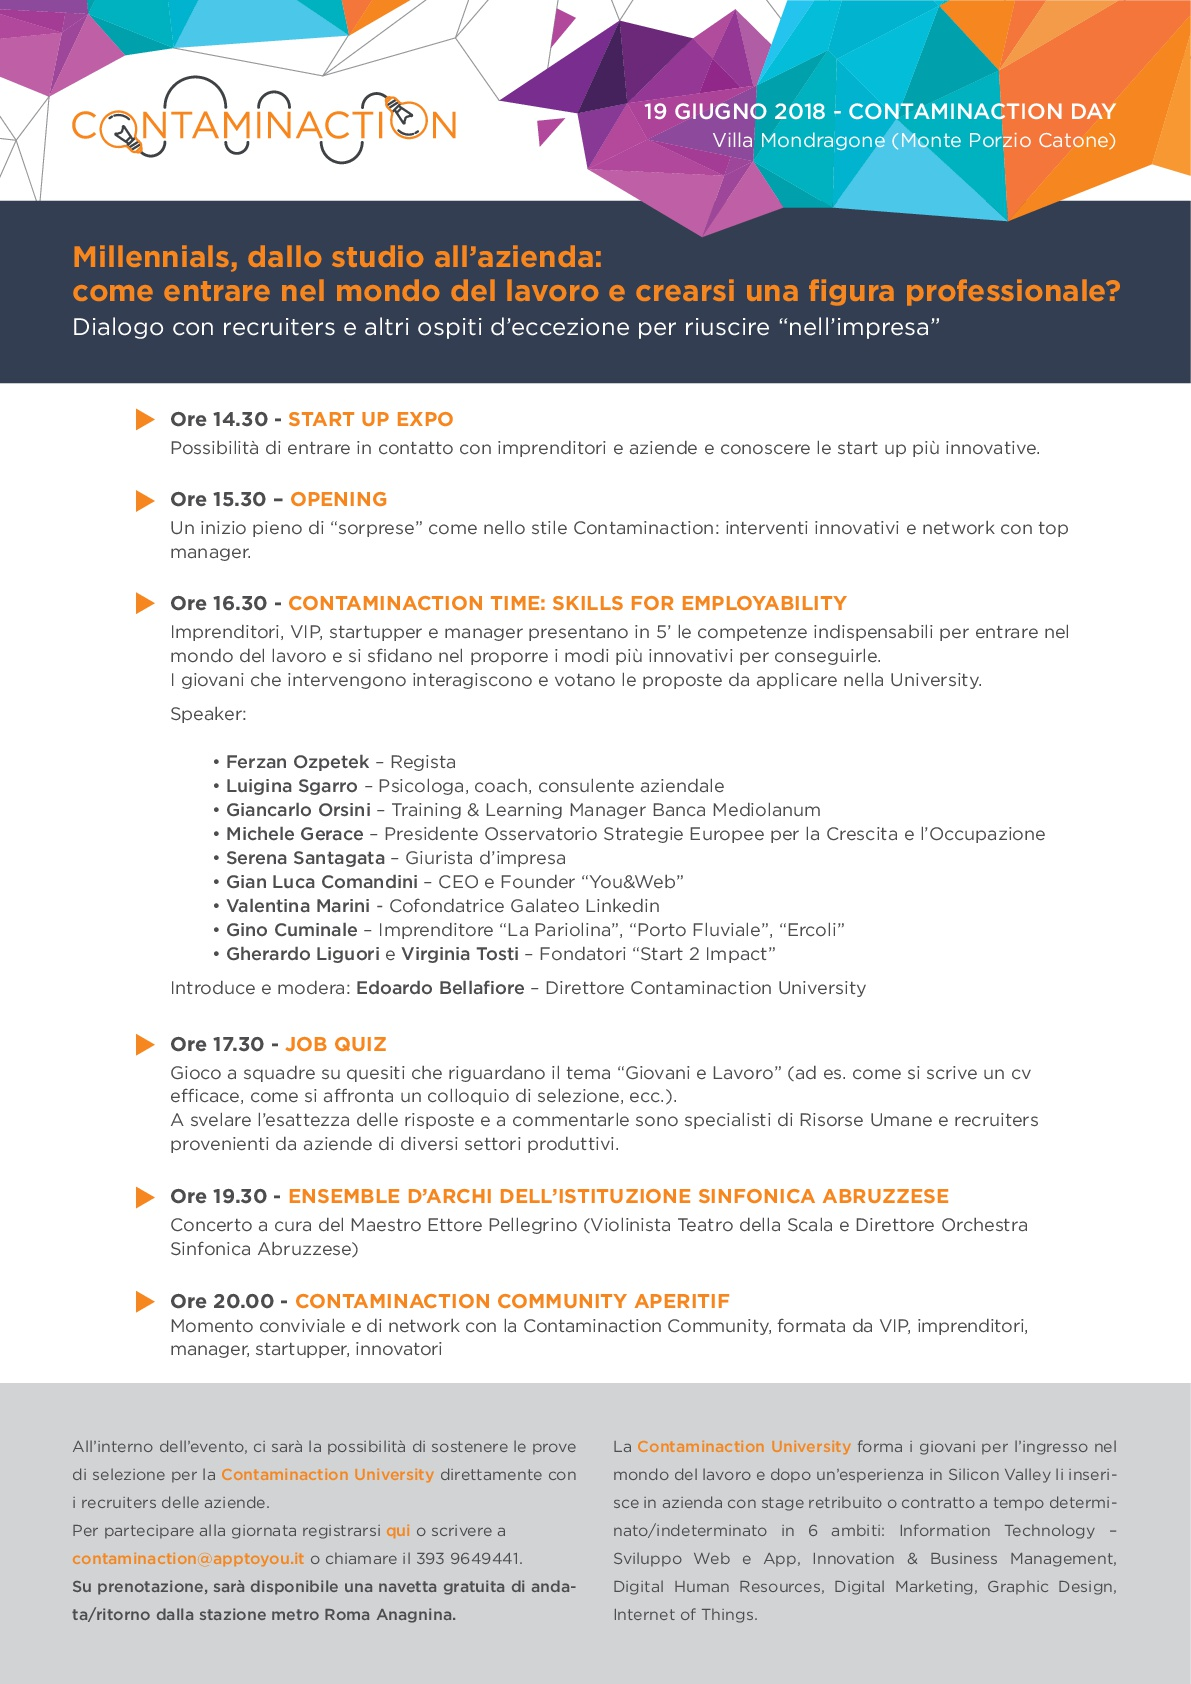 Programma Contaminaction 19 Giugno